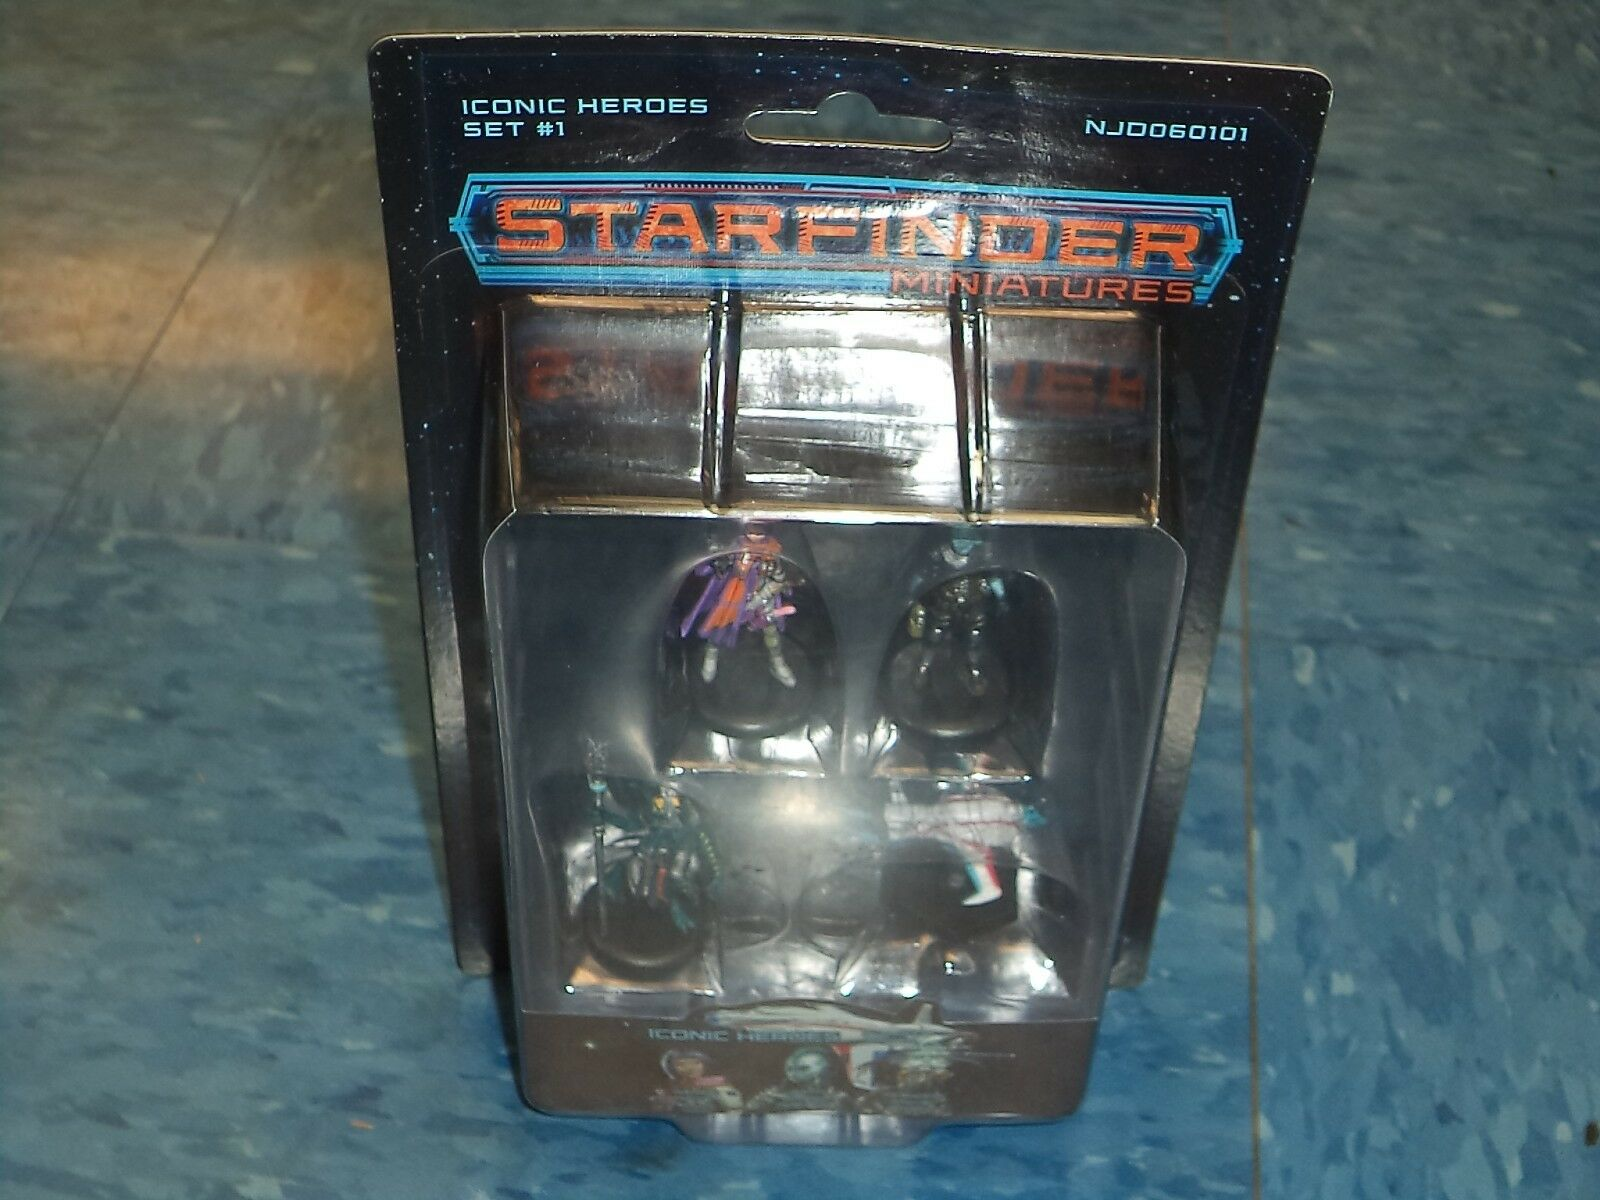 Iconic Heroes Set 1 Starfinder Miniatures Minis Paizo RPG Roleplaying Game New